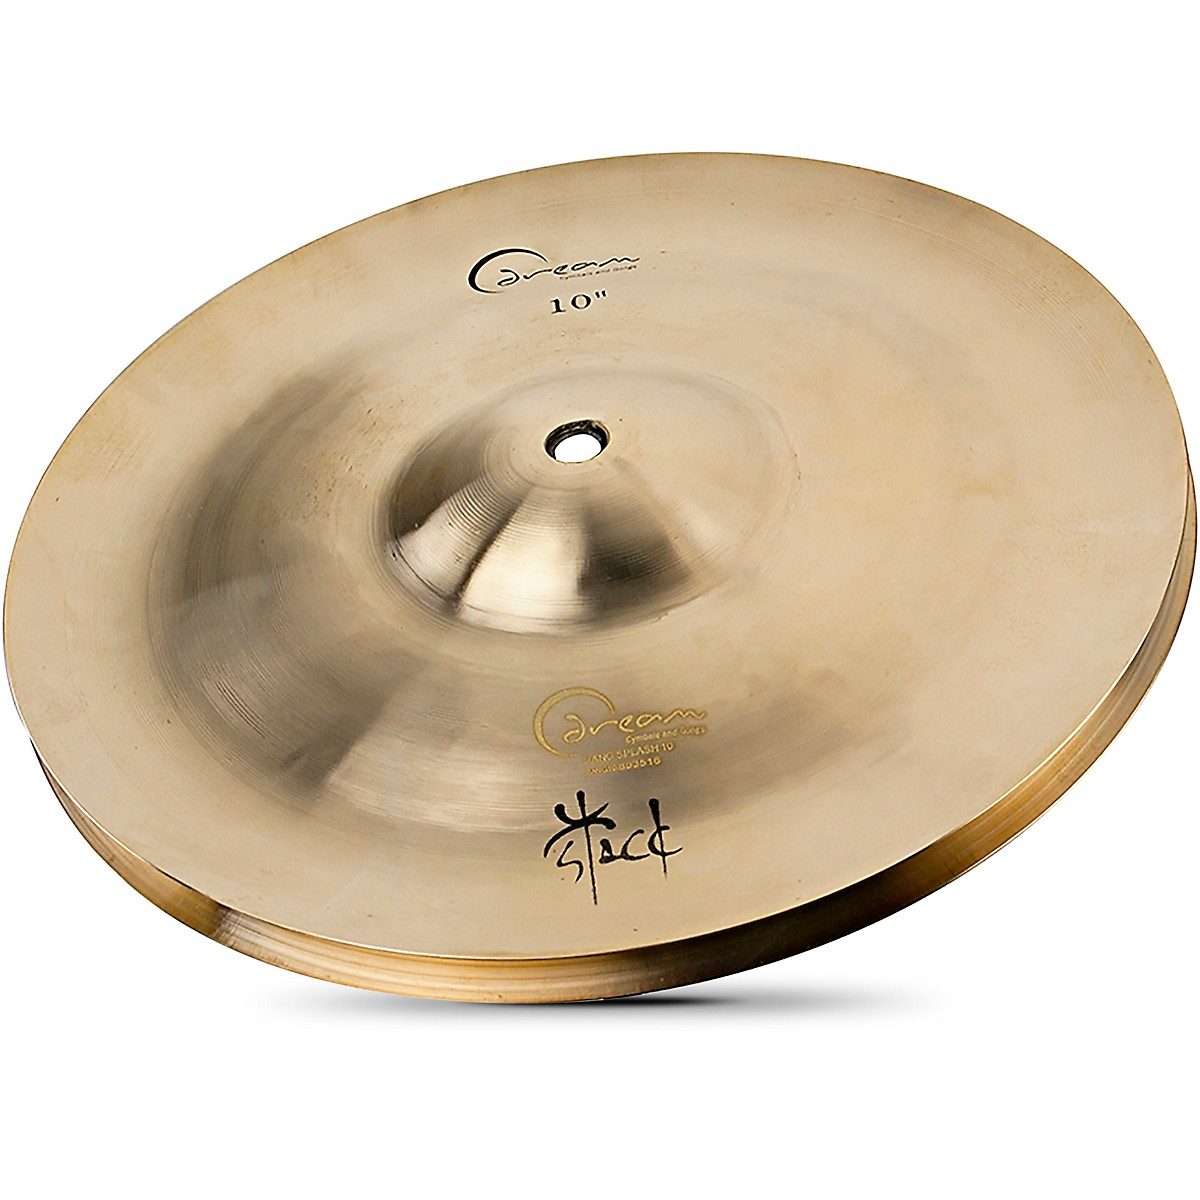 Dream Libor Hadrava Cymbal Stackers